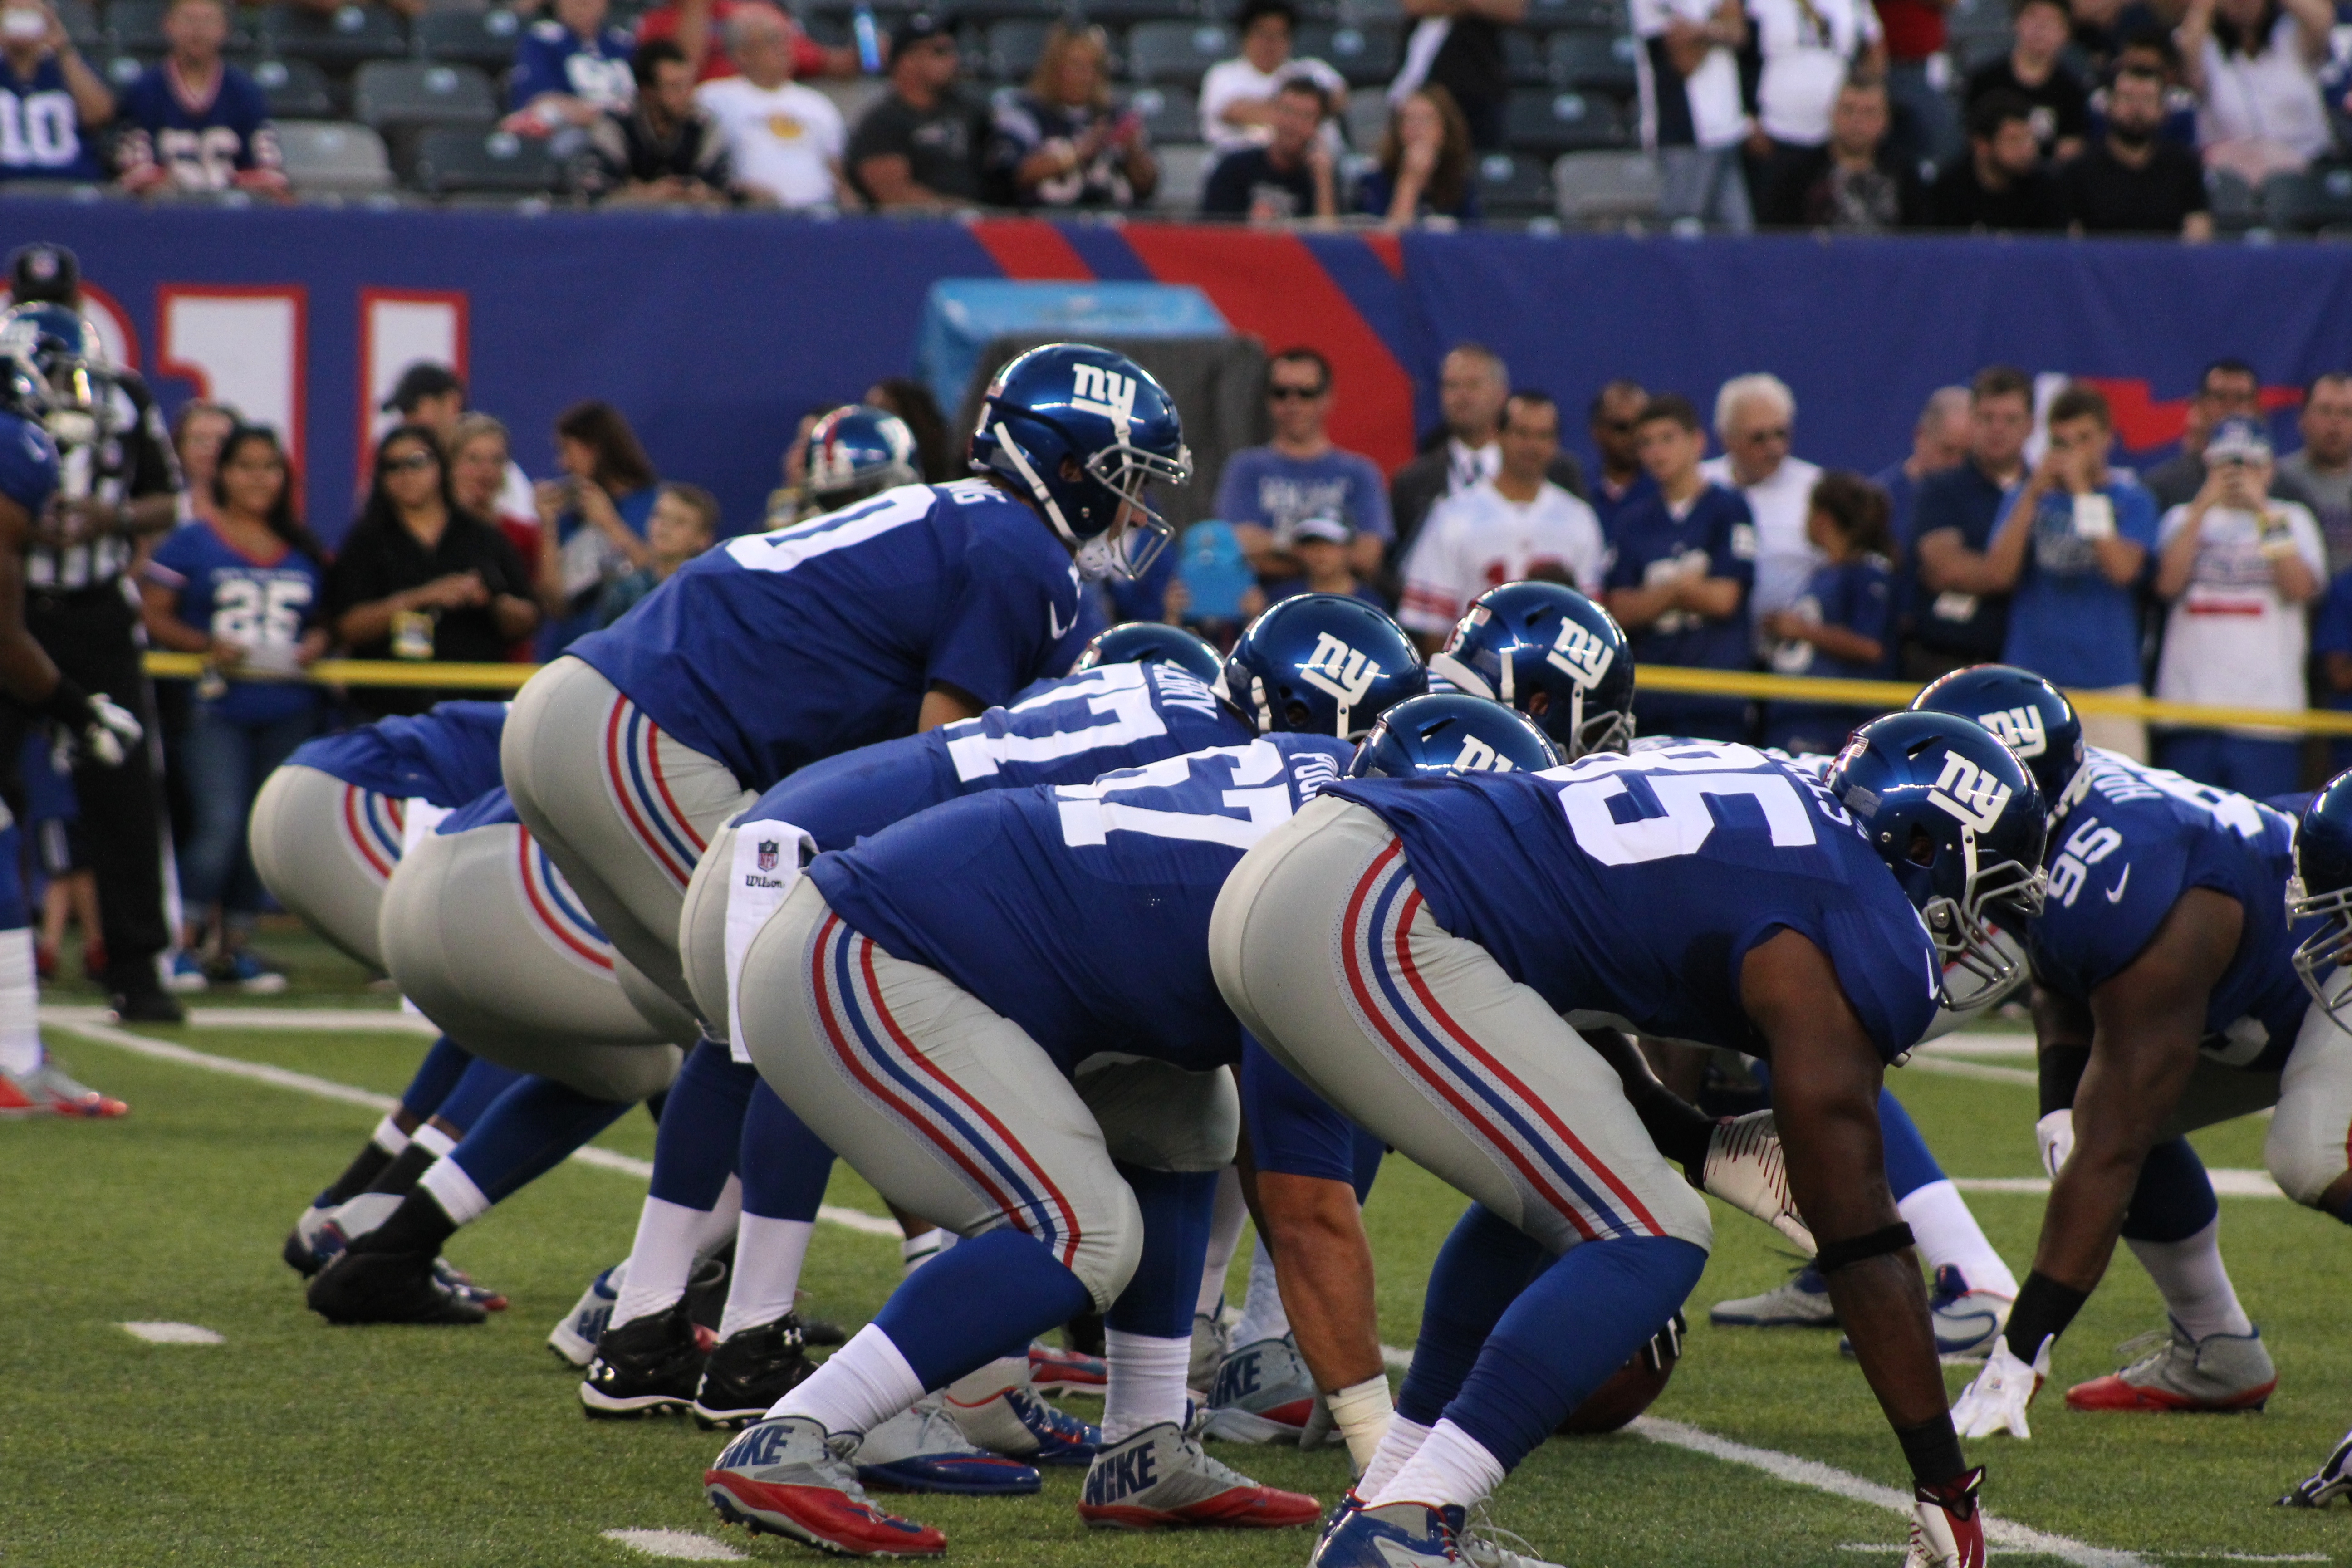 Get your ticket to see the New York Giants at the Lowest Possible Price All Tickets are 100 guaranteed Lets Go!